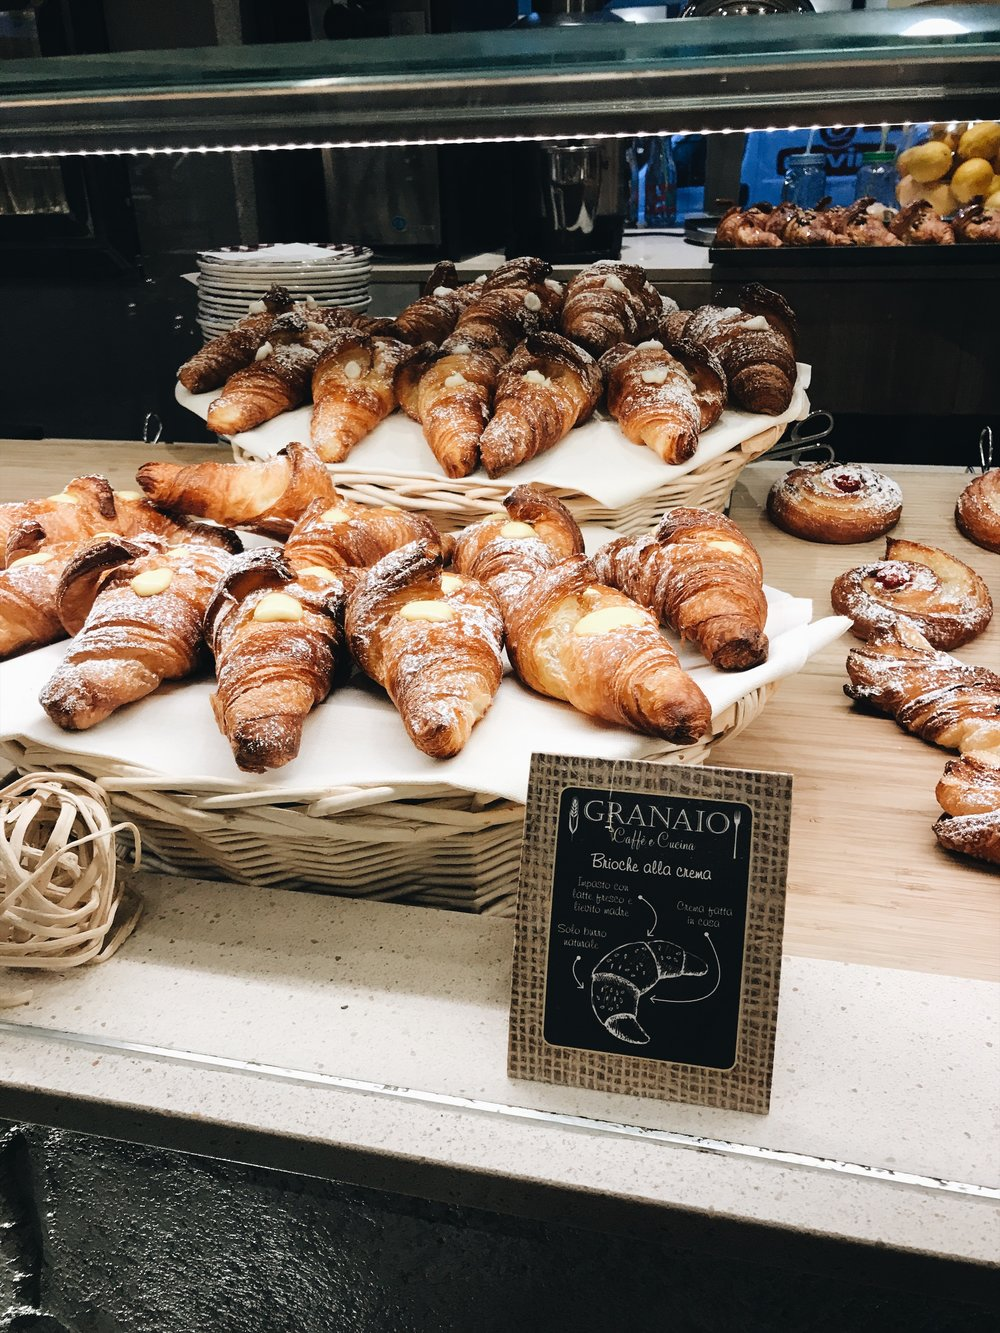 the croissants at Granaio.